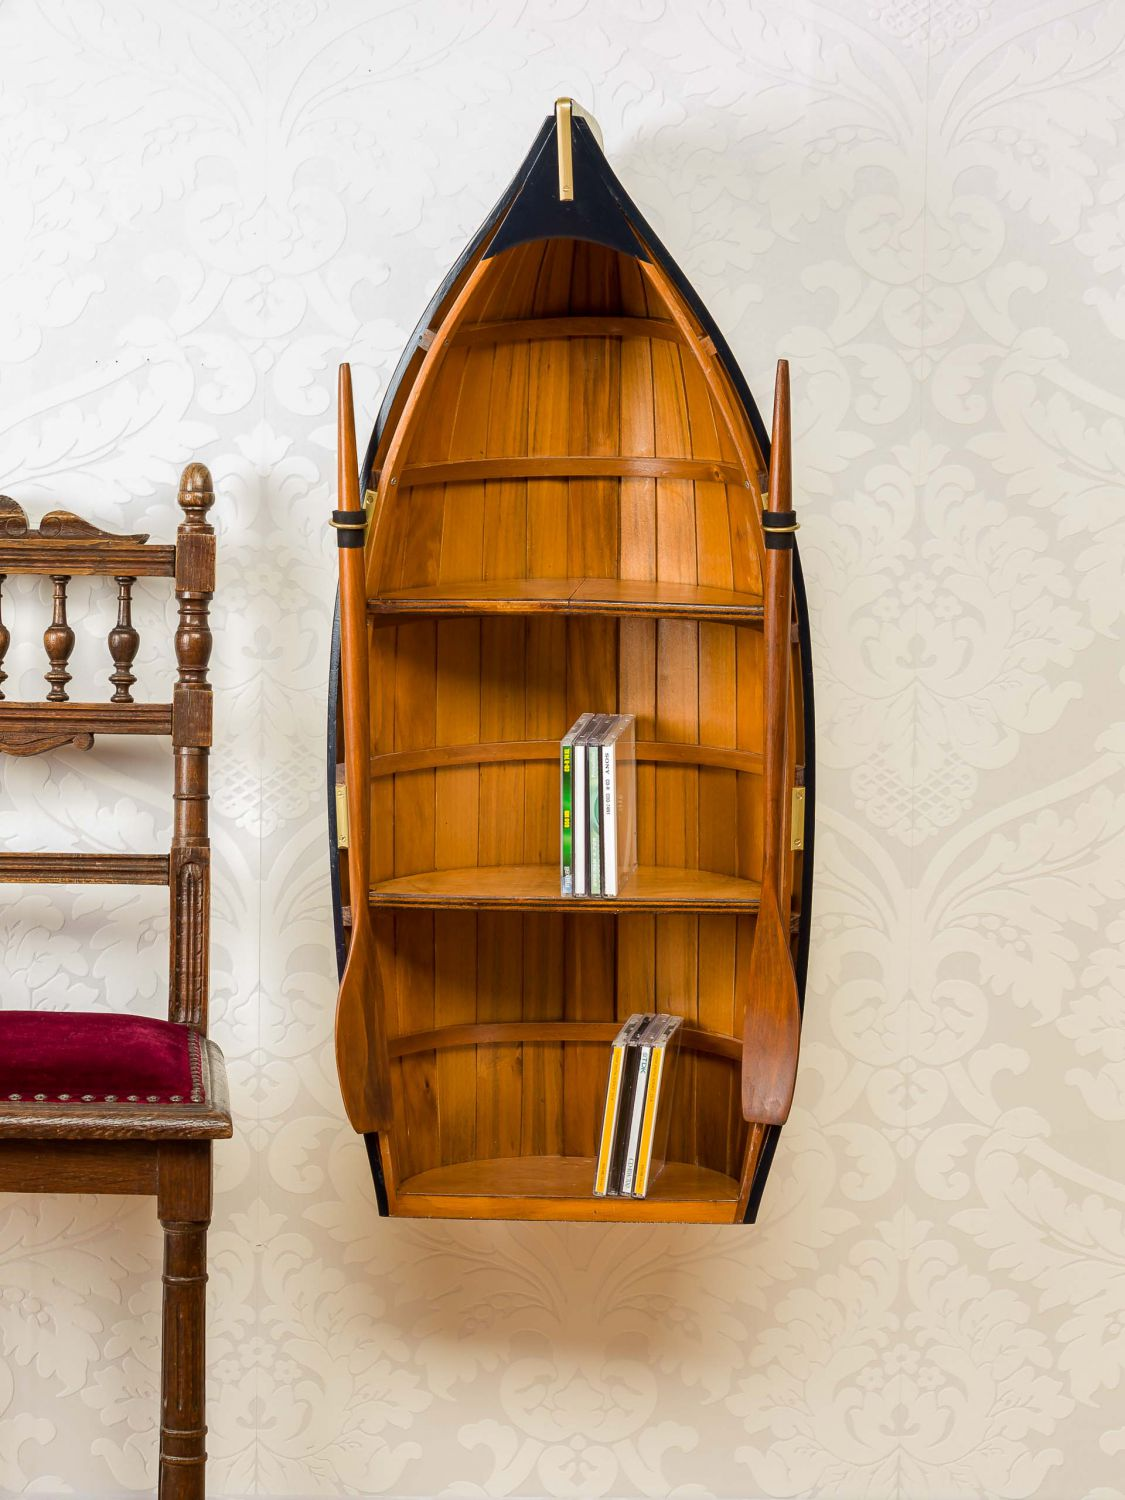 regal boot holz bootsregal schiff maritim dekoration schrank 90cm wooden rack ebay. Black Bedroom Furniture Sets. Home Design Ideas